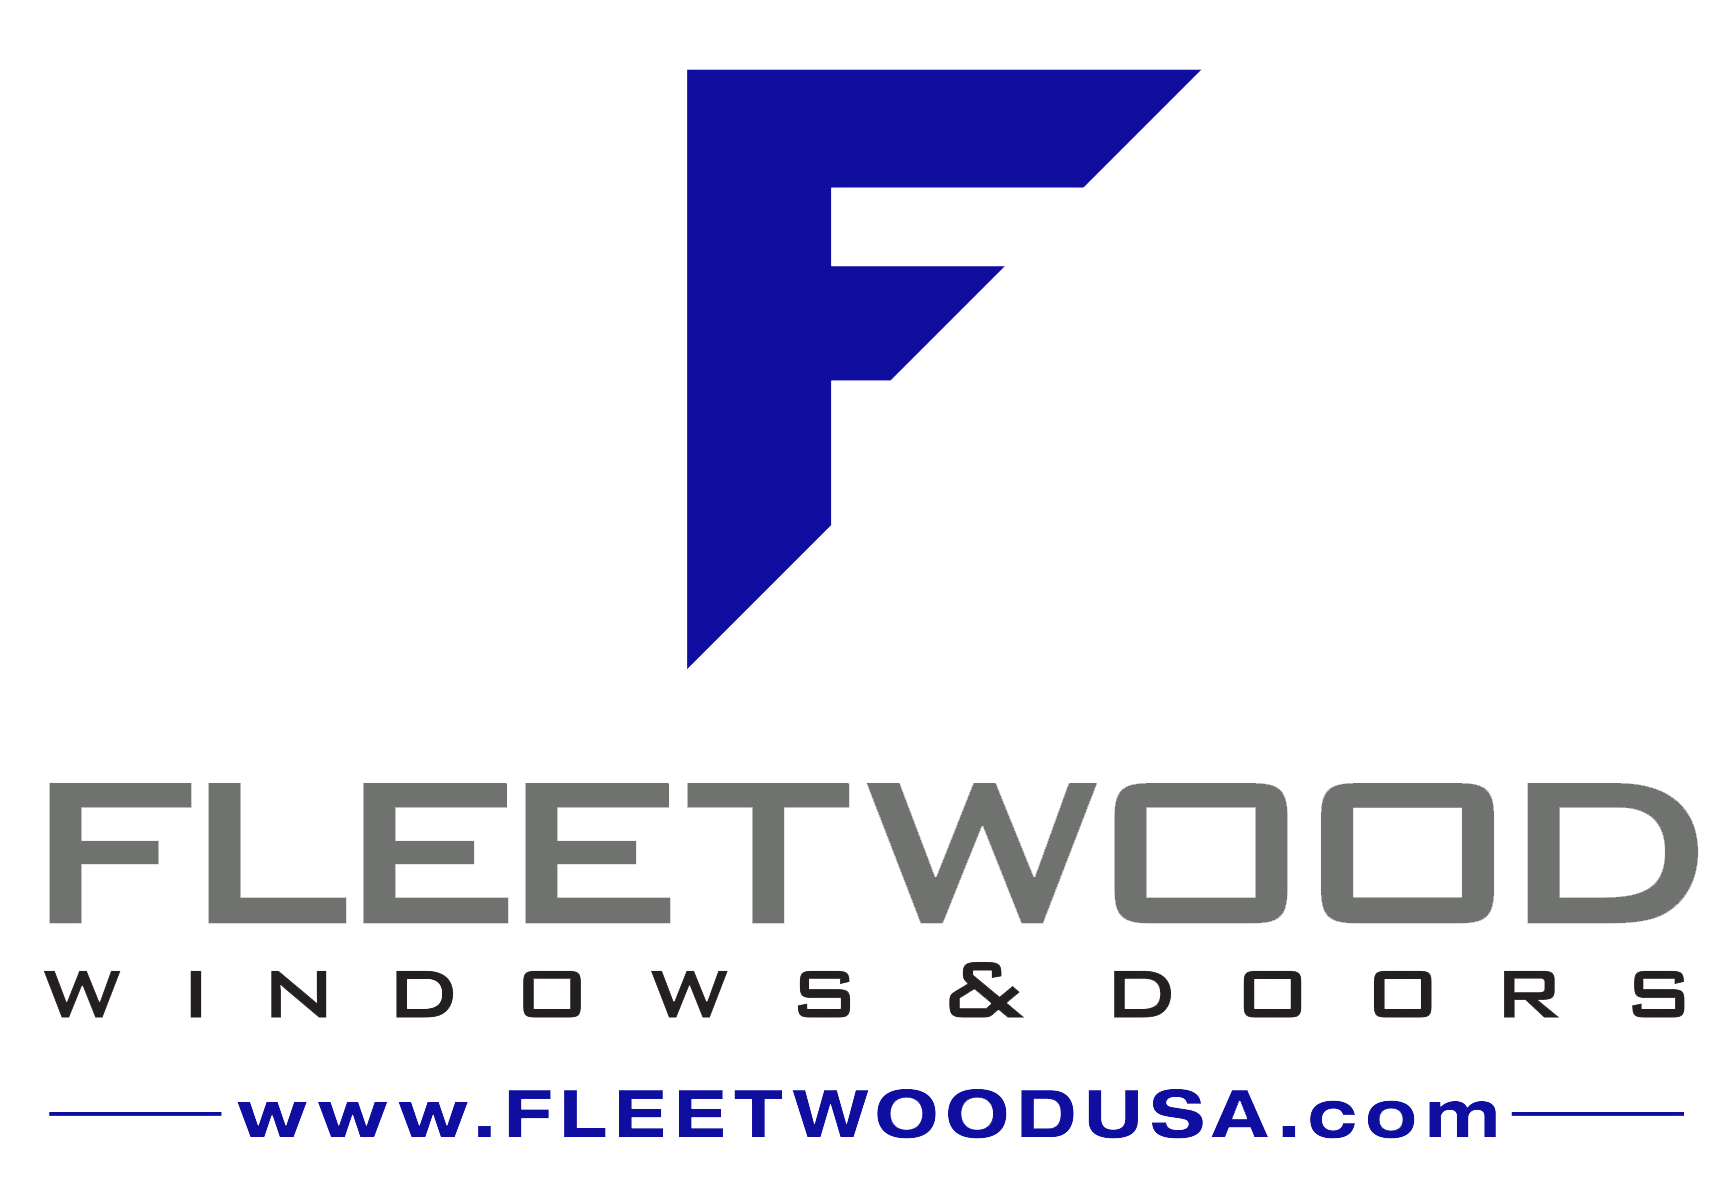 fleetwood logo full